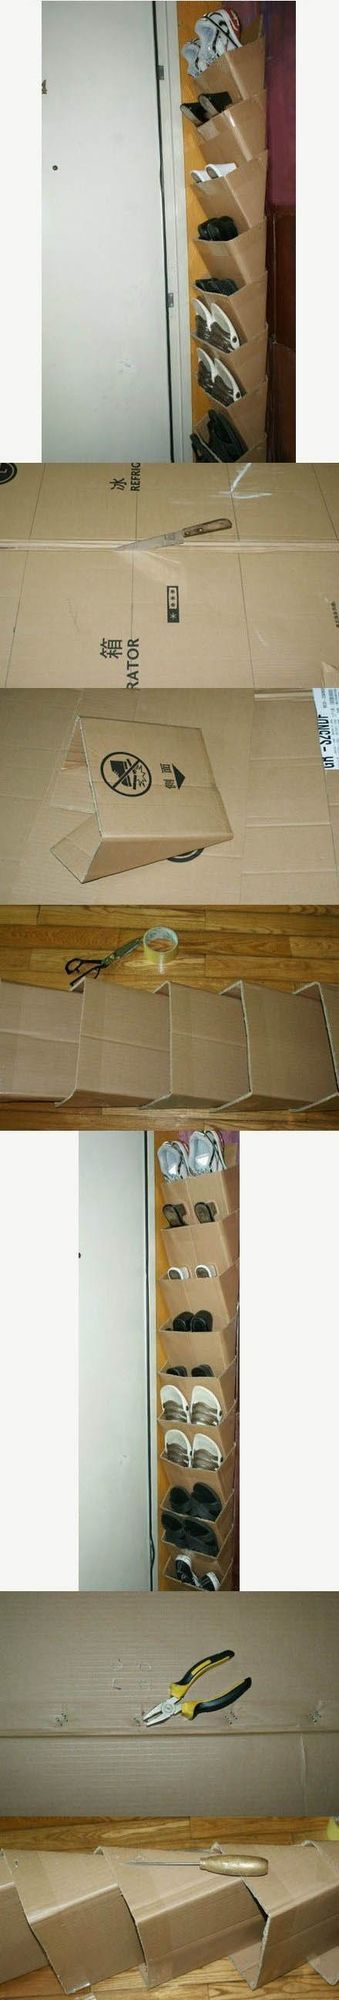 How to make a shoe organizer using used cardboard boxes | DIY Creative Ideas | Bloglovin'